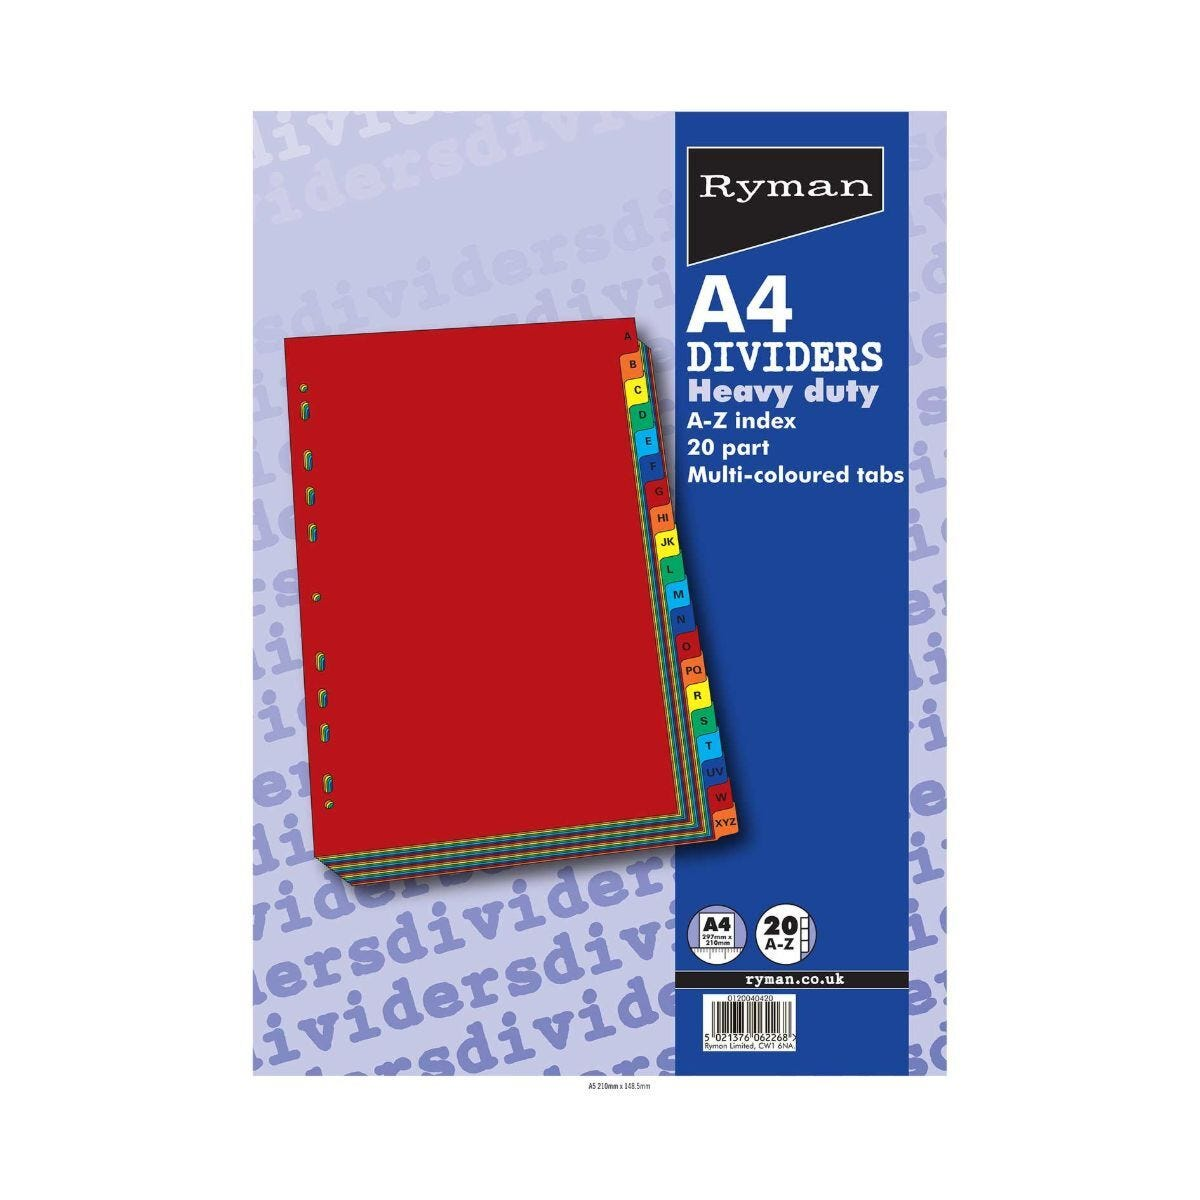 Ryman Tab Dividers Heavy Duty A-Z 20 Part A4 240gsm